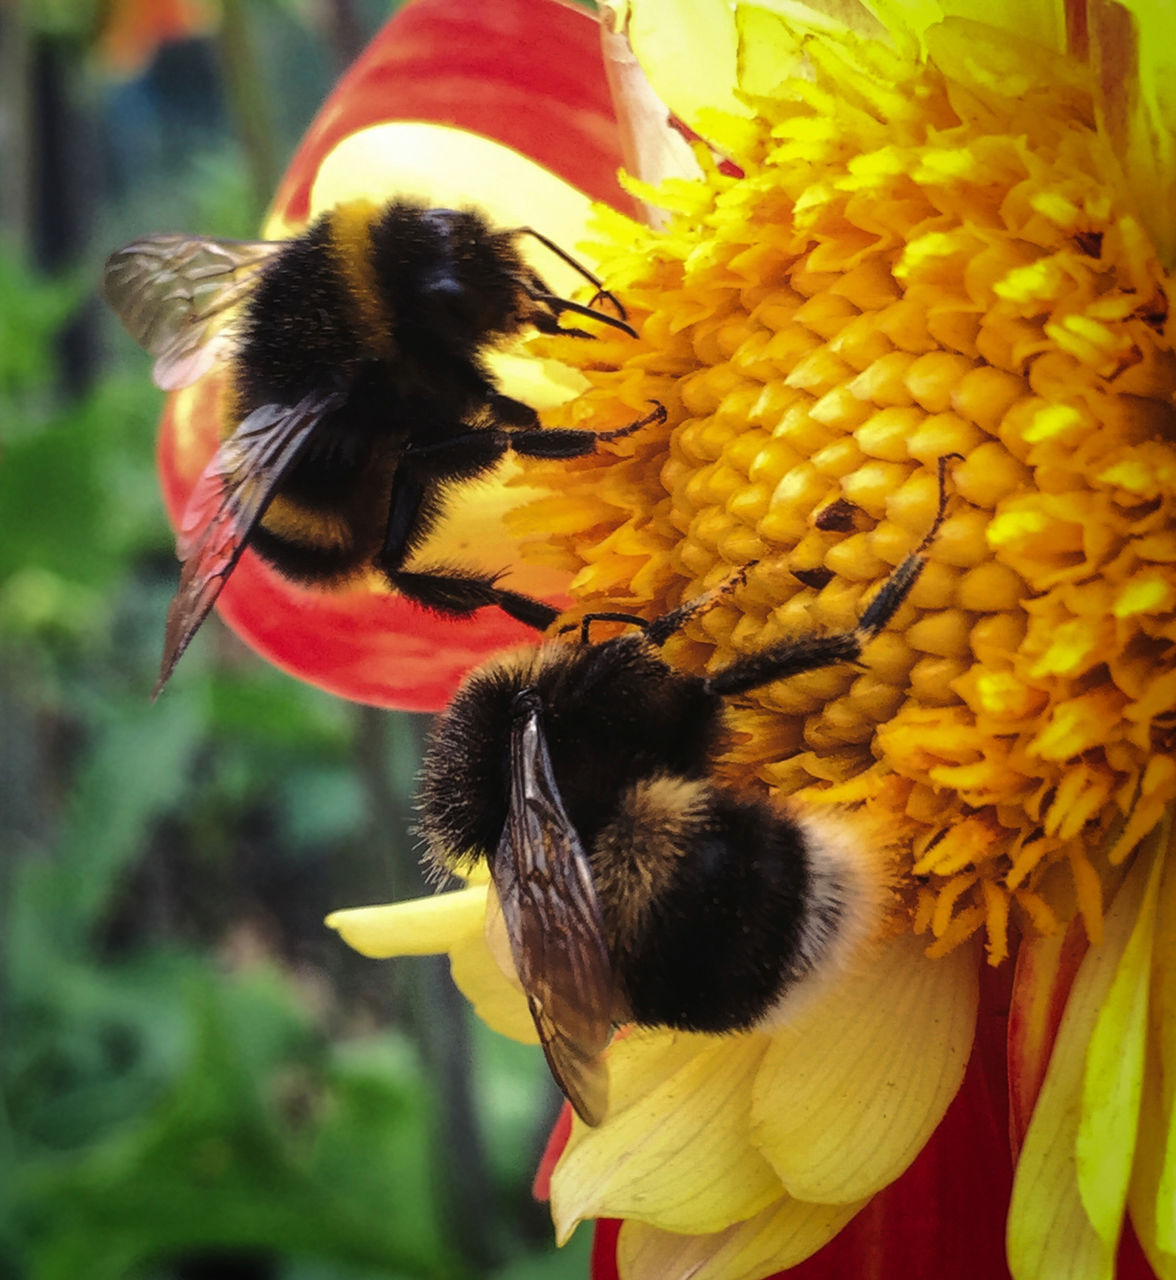 animal themes, flower, animals in the wild, insect, fragility, petal, yellow, nature, animal wildlife, beauty in nature, one animal, pollination, freshness, outdoors, day, close-up, bee, flower head, honey bee, symbiotic relationship, no people, growth, bumblebee, buzzing, mammal